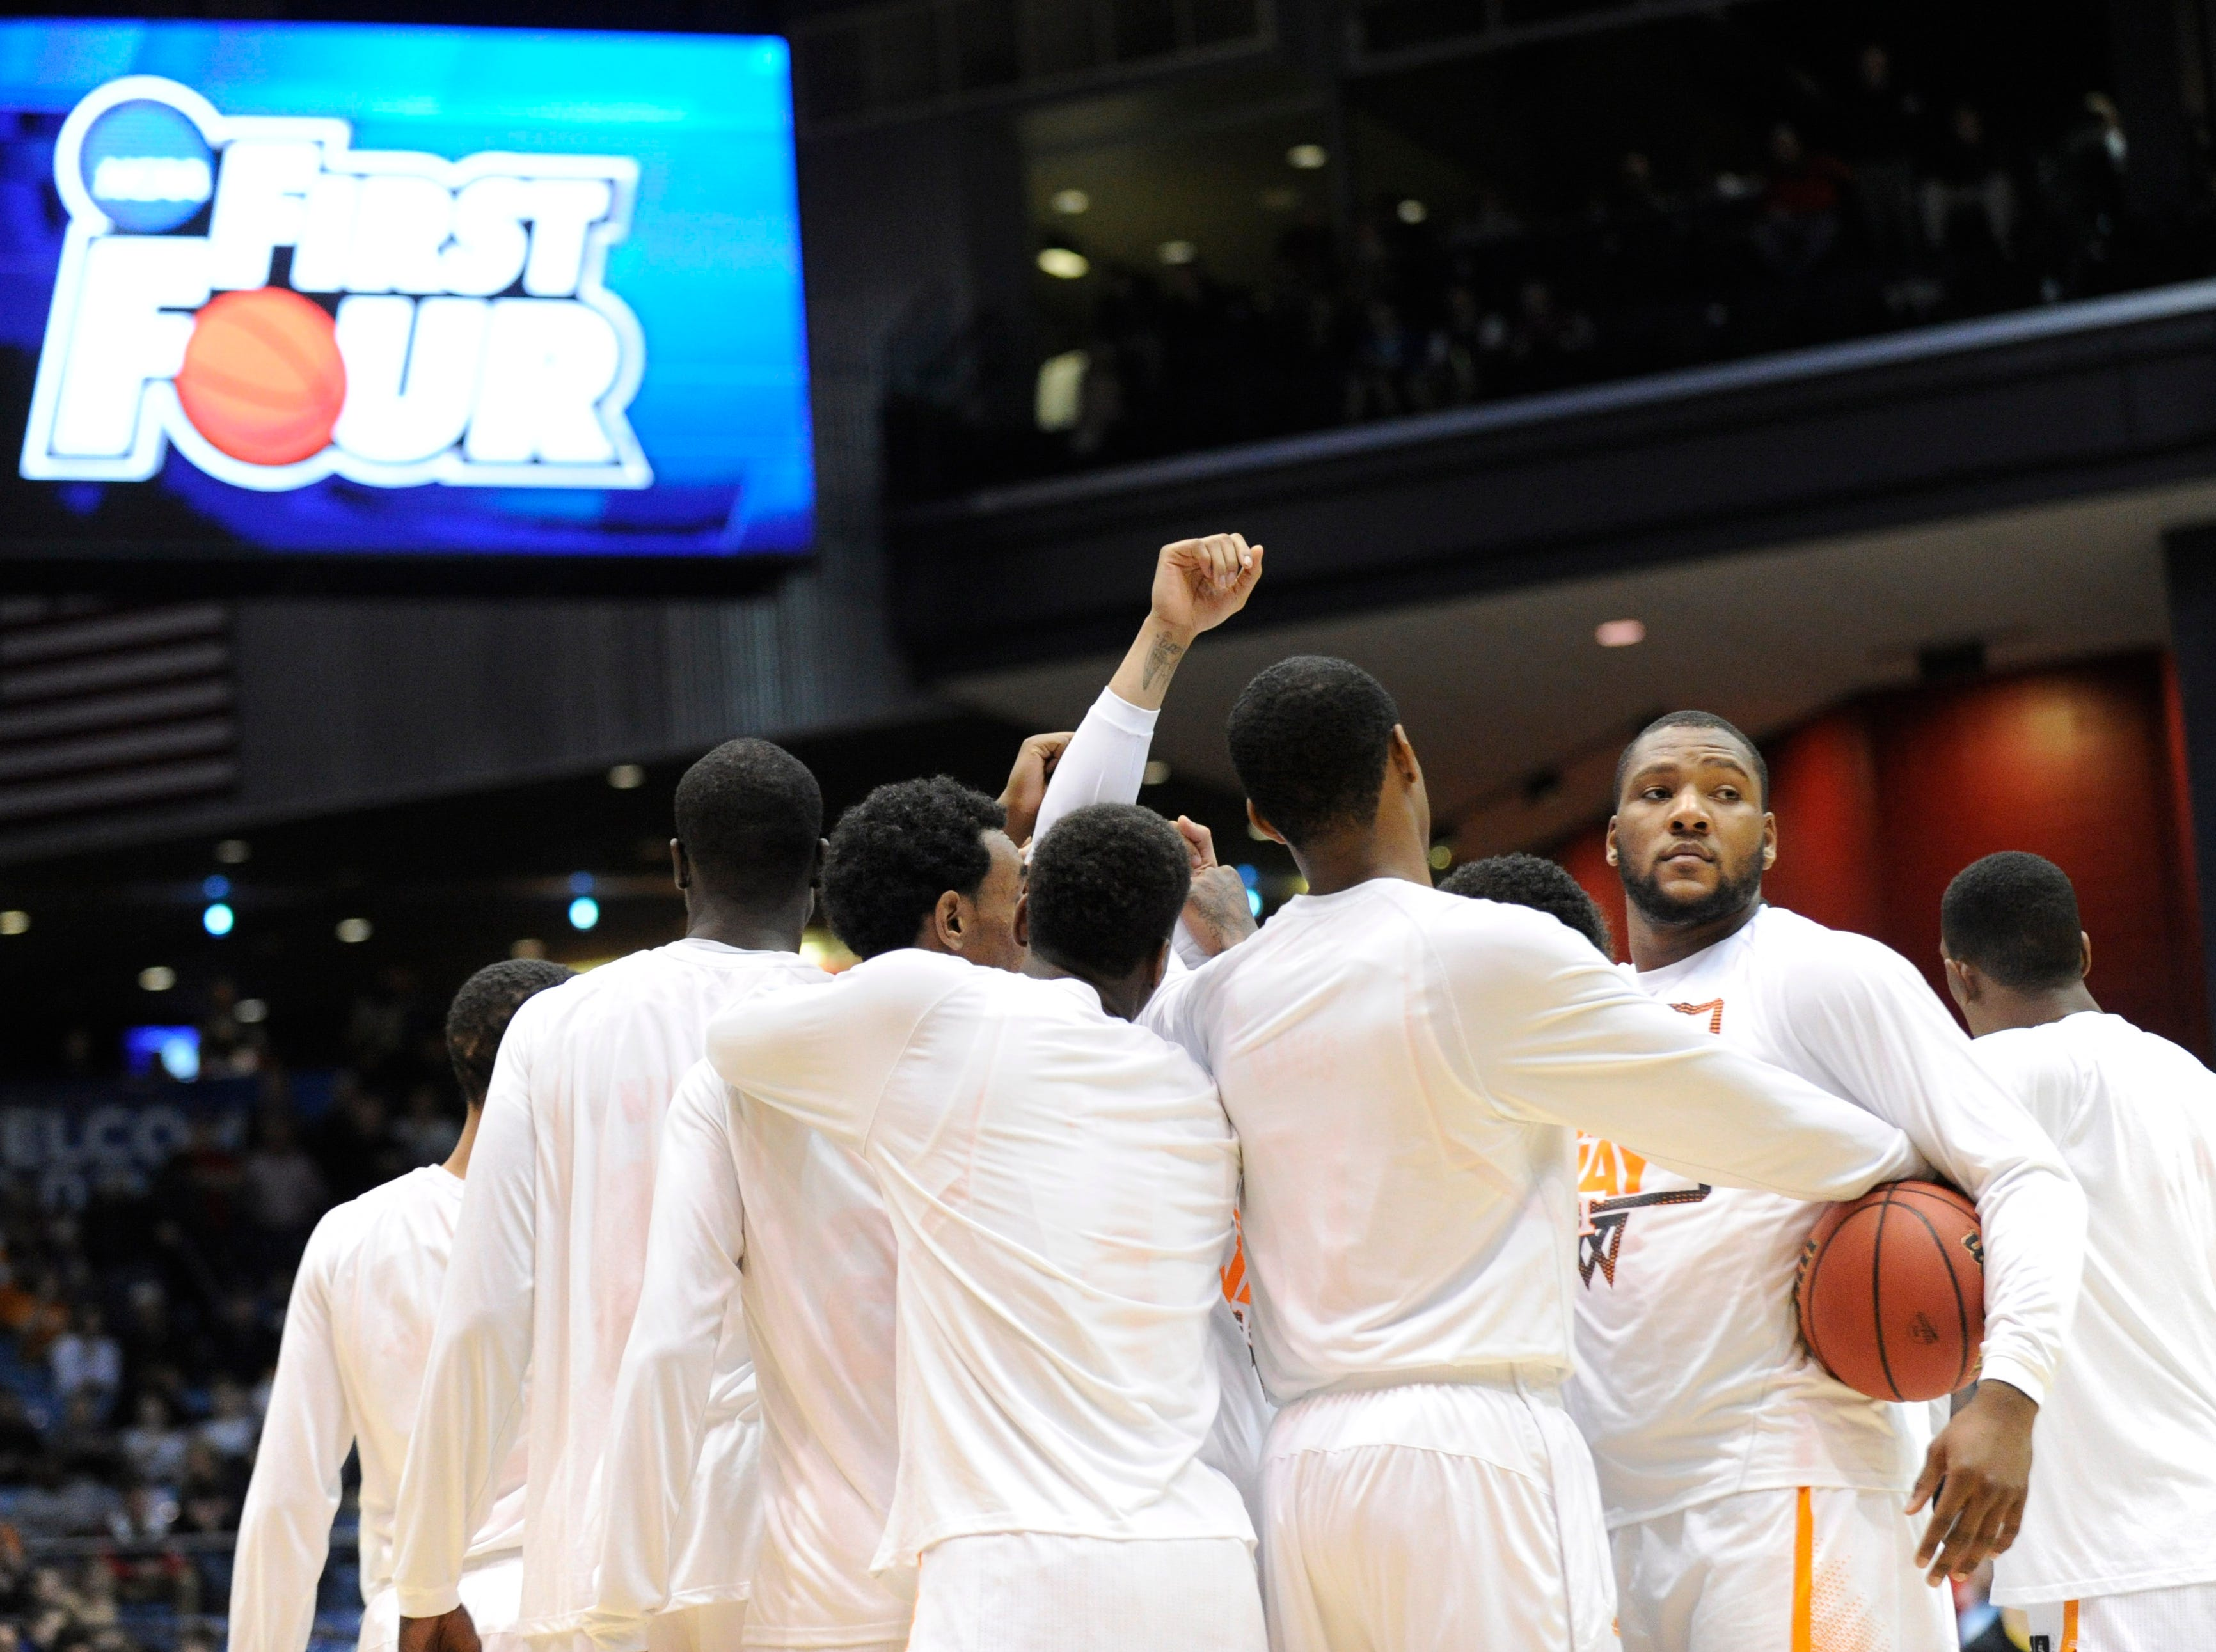 Tennessee forward Jeronne Maymon (34) gathers with teammates at center court before their NCAA tournament First Four play-in game against Iowa at the University of Dayton Arena in Dayton, Ohio on Wednesday, March 19, 2014.